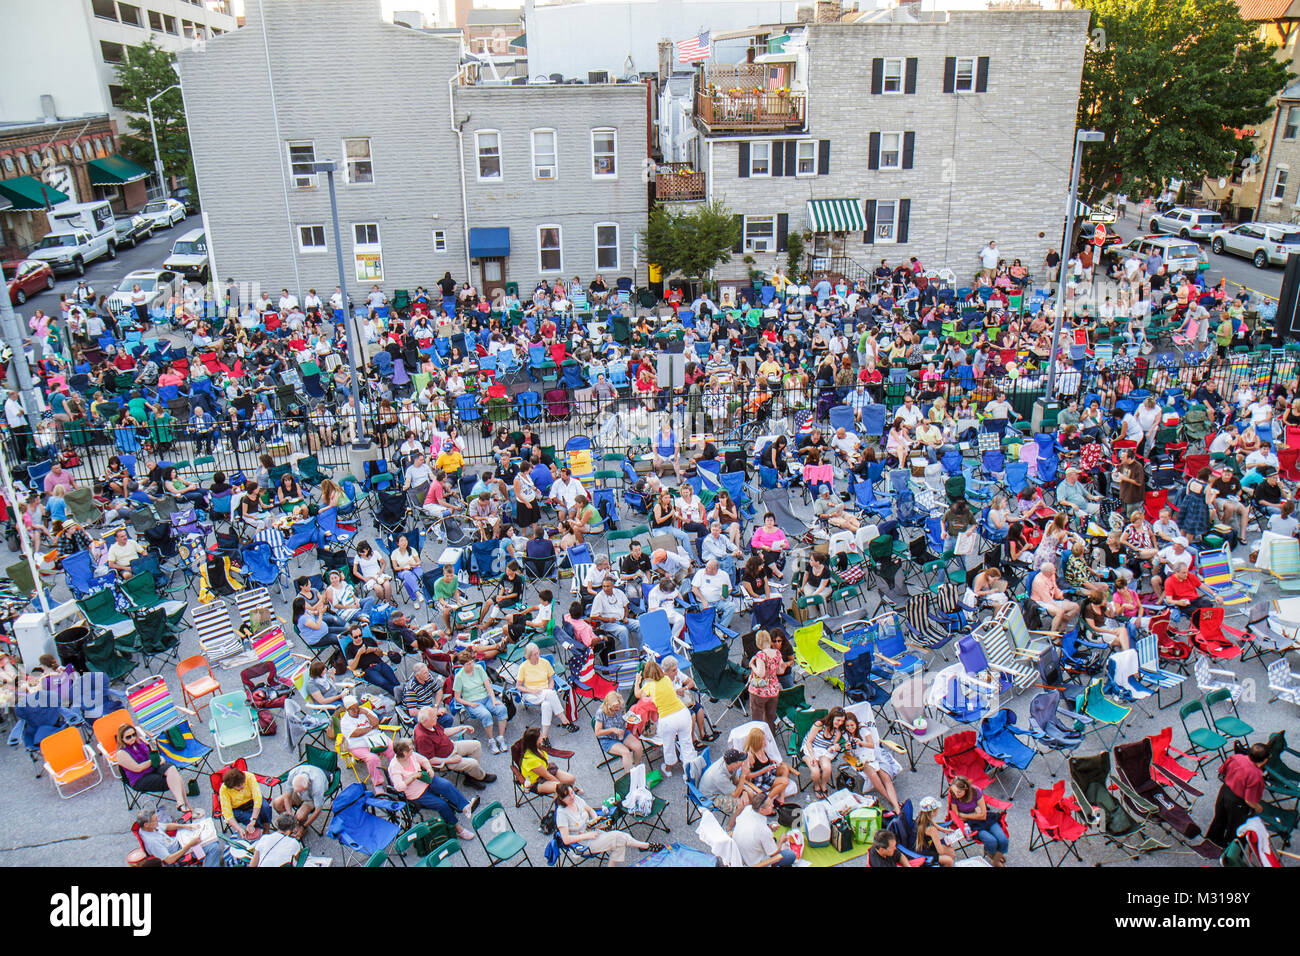 Baltimore Maryland Little Italy Ethnic Neighborhood Working Class Community  Event Crowd Free Outdoor Movie Lounge Chair